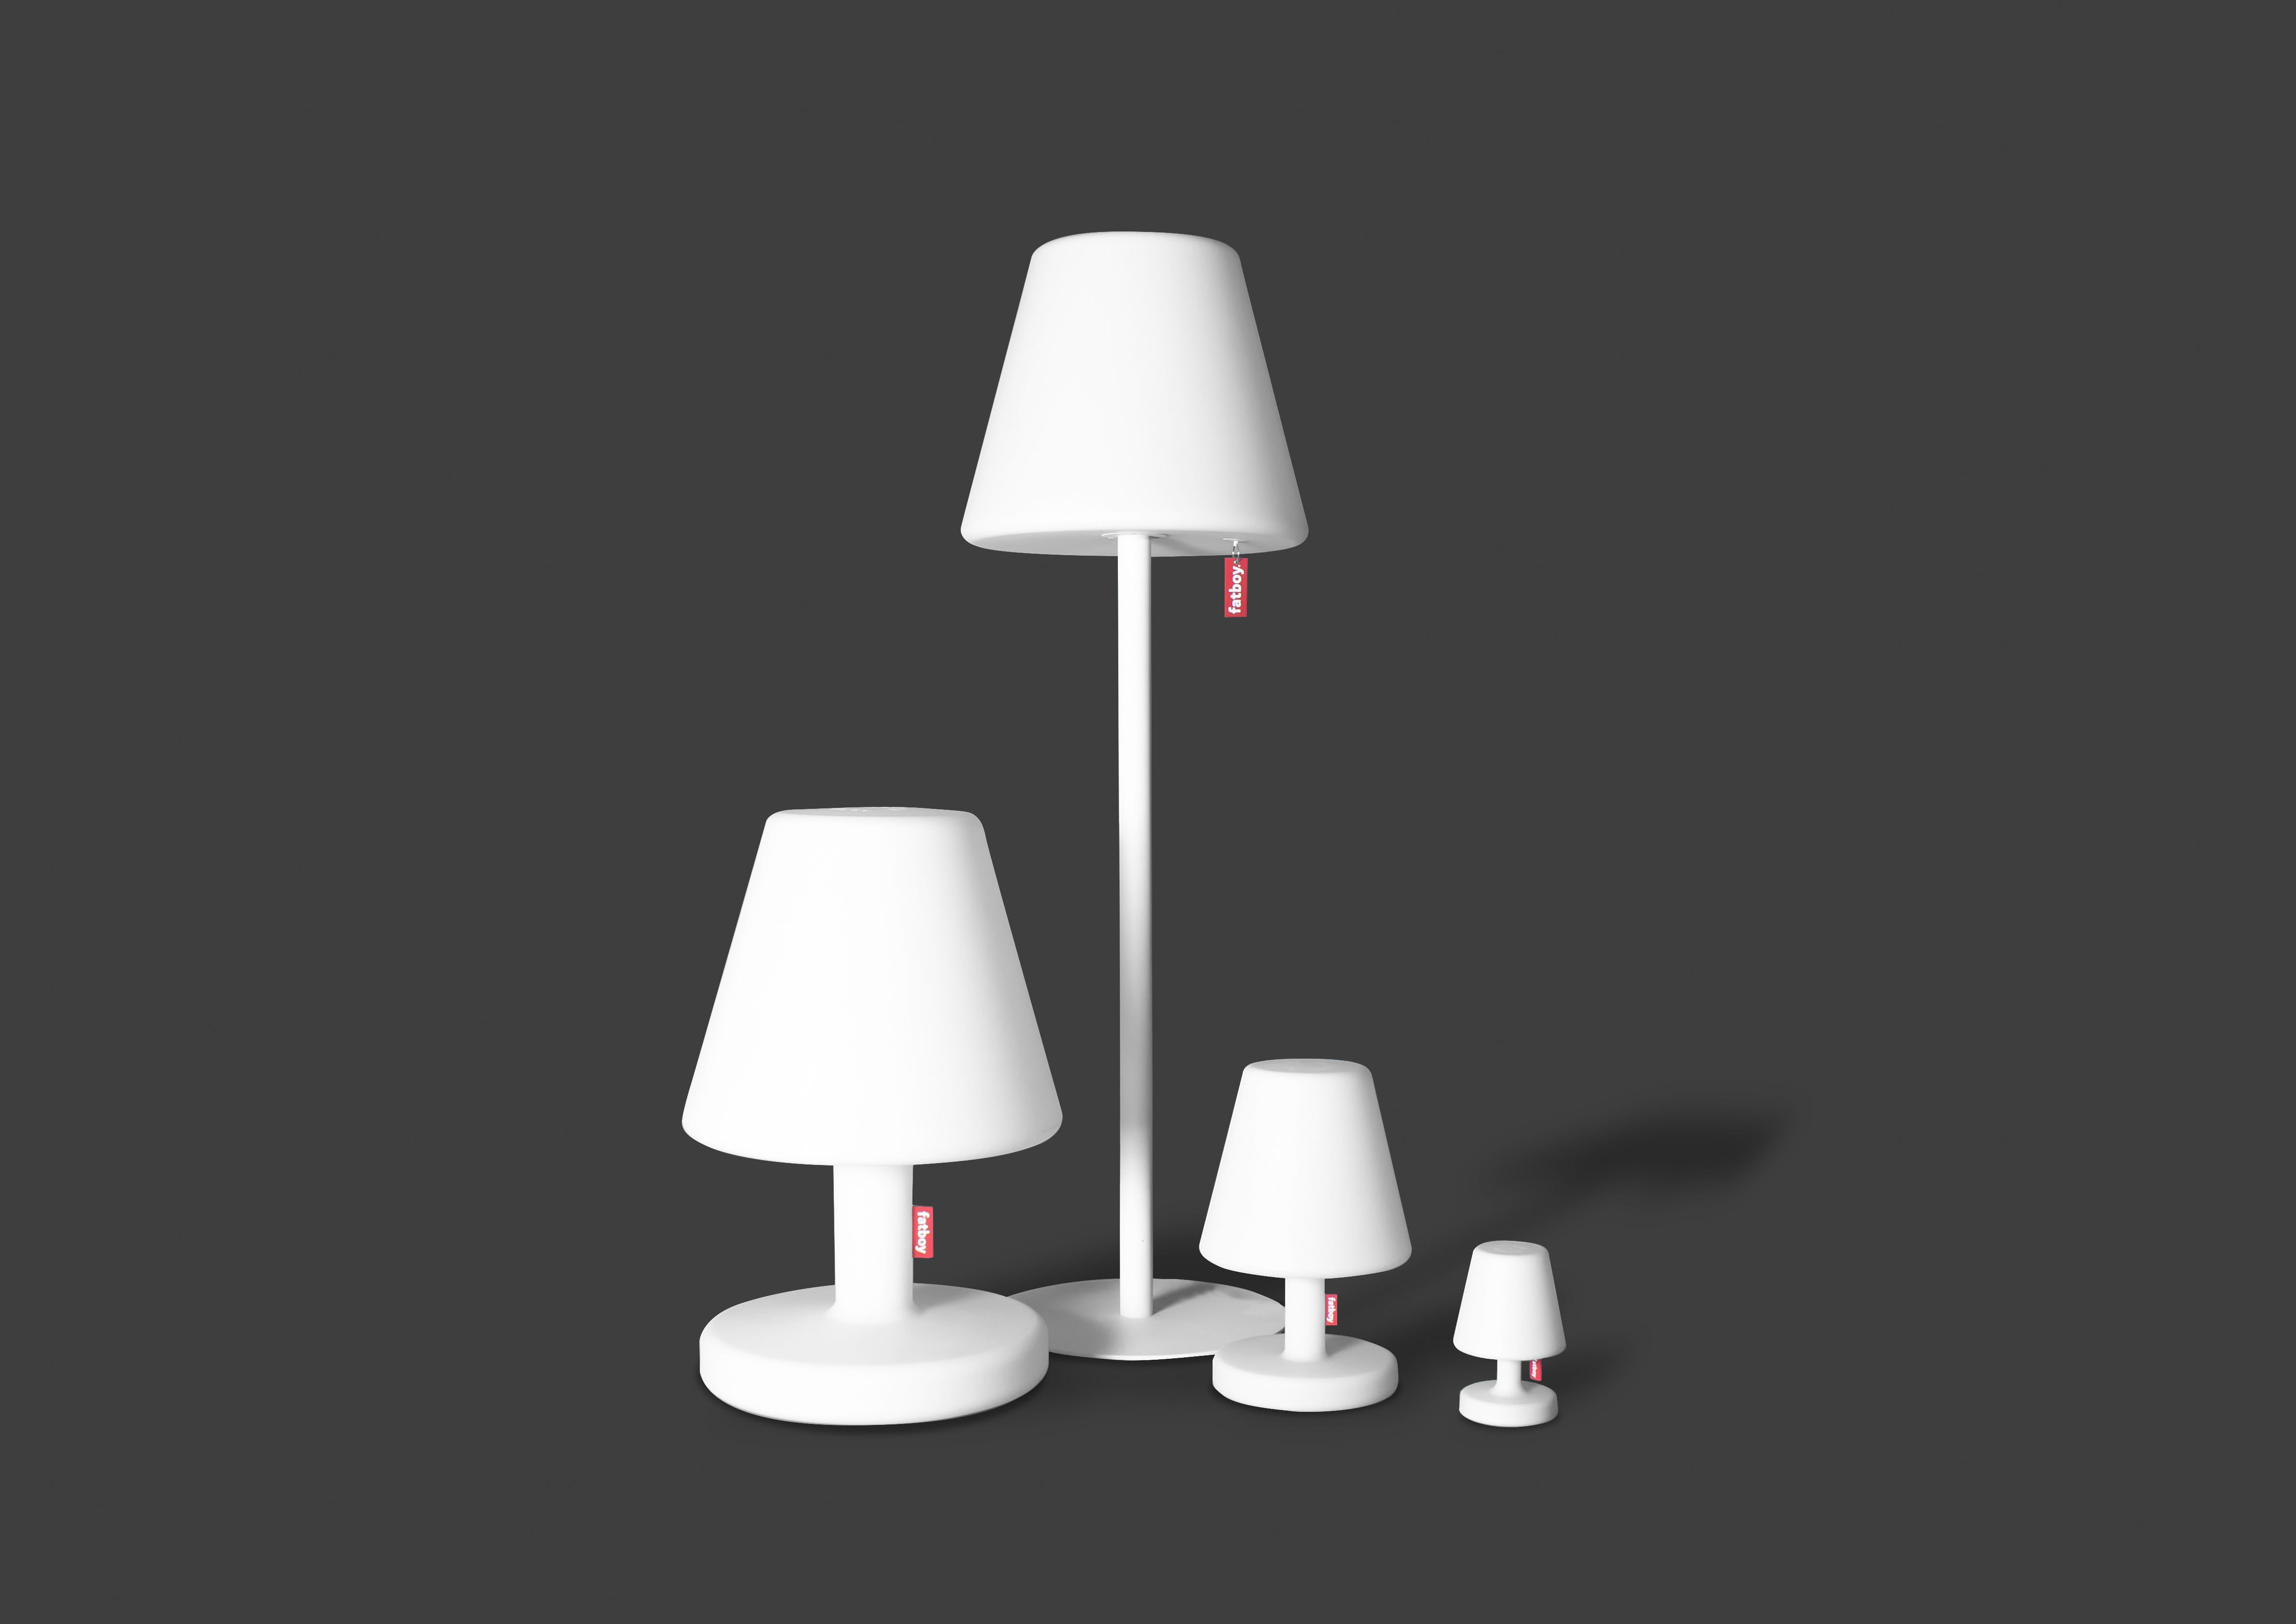 Pin By Sharyn Wortman On Playroom Lamp Modern Lounge Contemporary Lamps